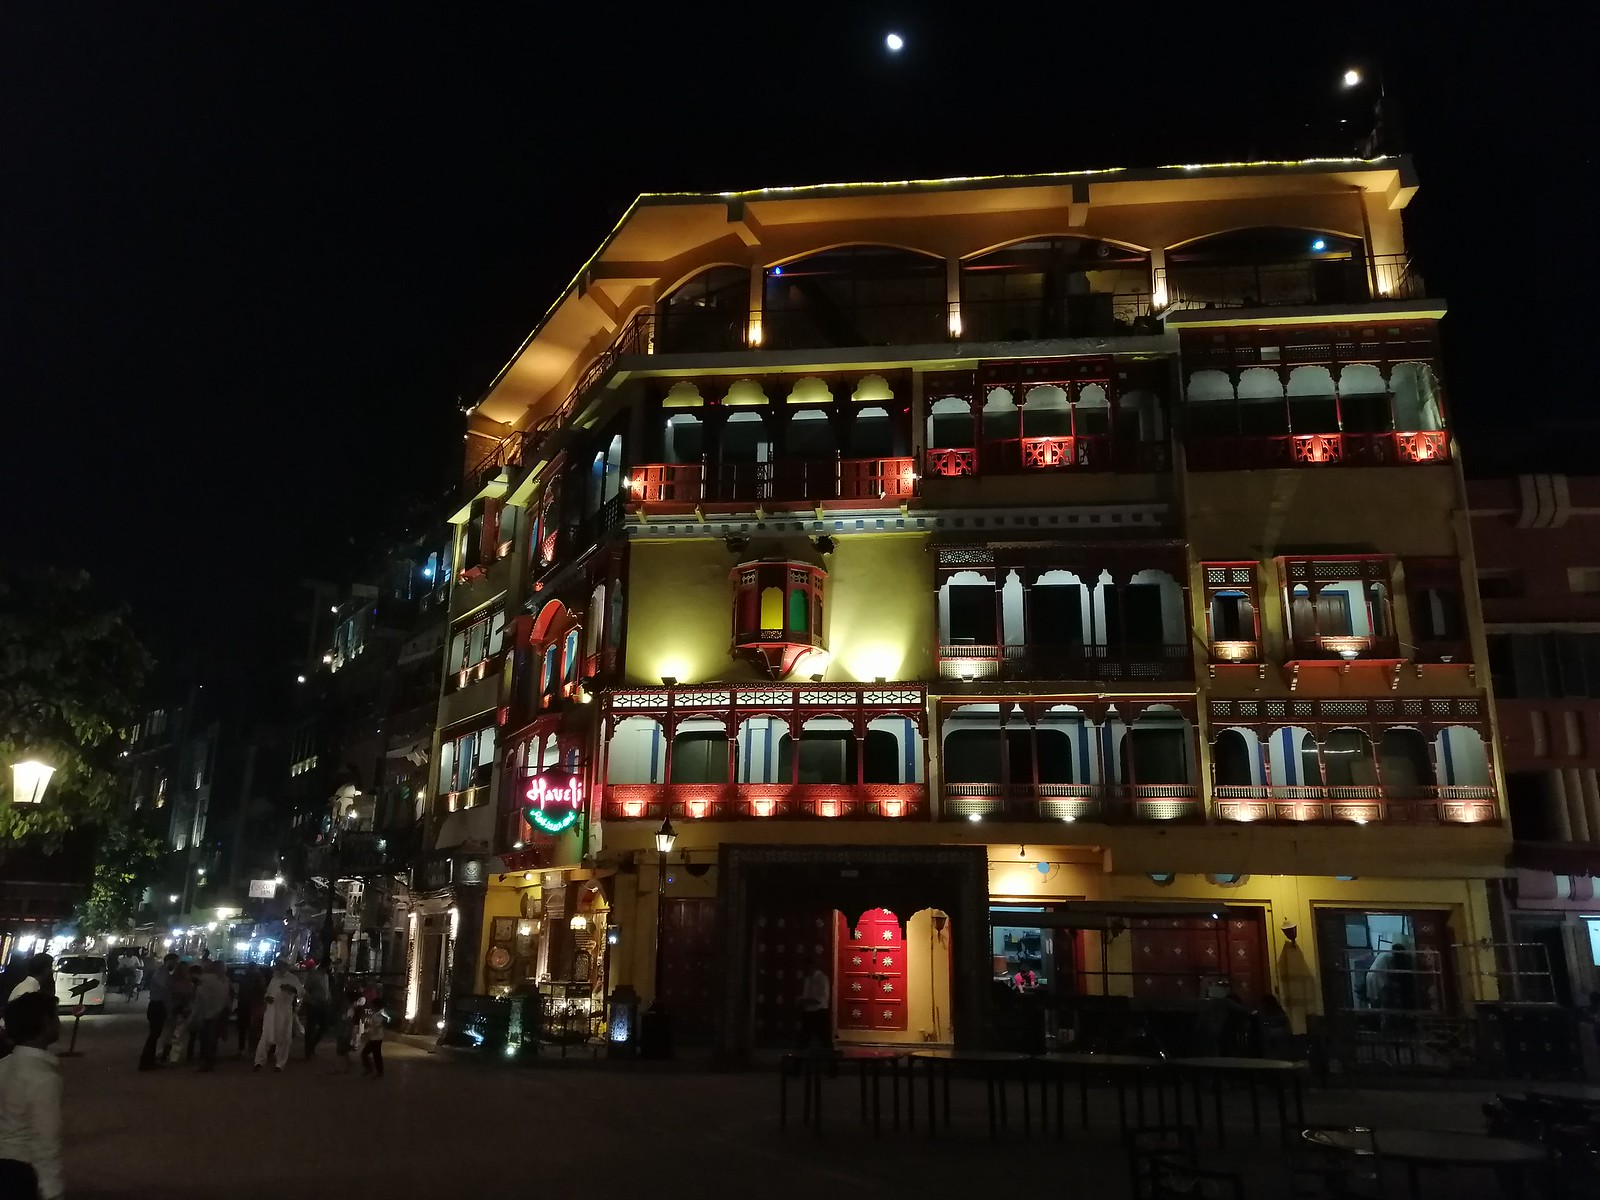 Building Picture with HDR Mode on Huawei Nova 3i